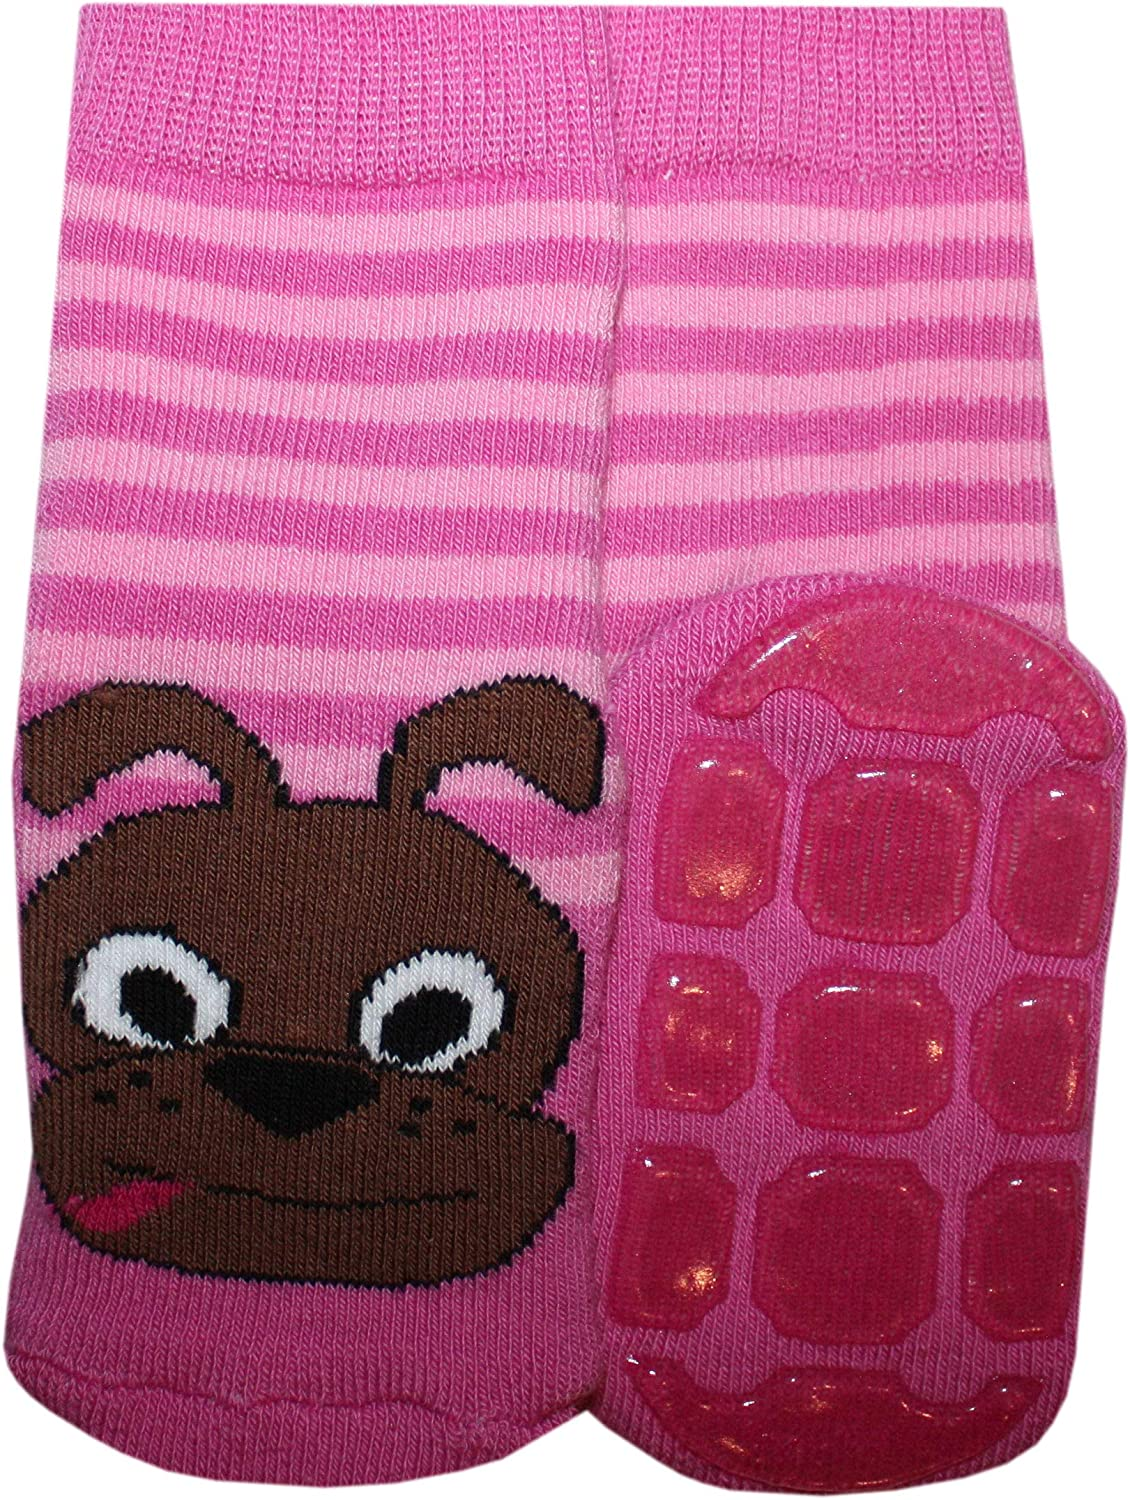 Pink Weri Spezials Baby and Children ABS-Turtle Slippers Anti Non Slip Socks Happy doggy